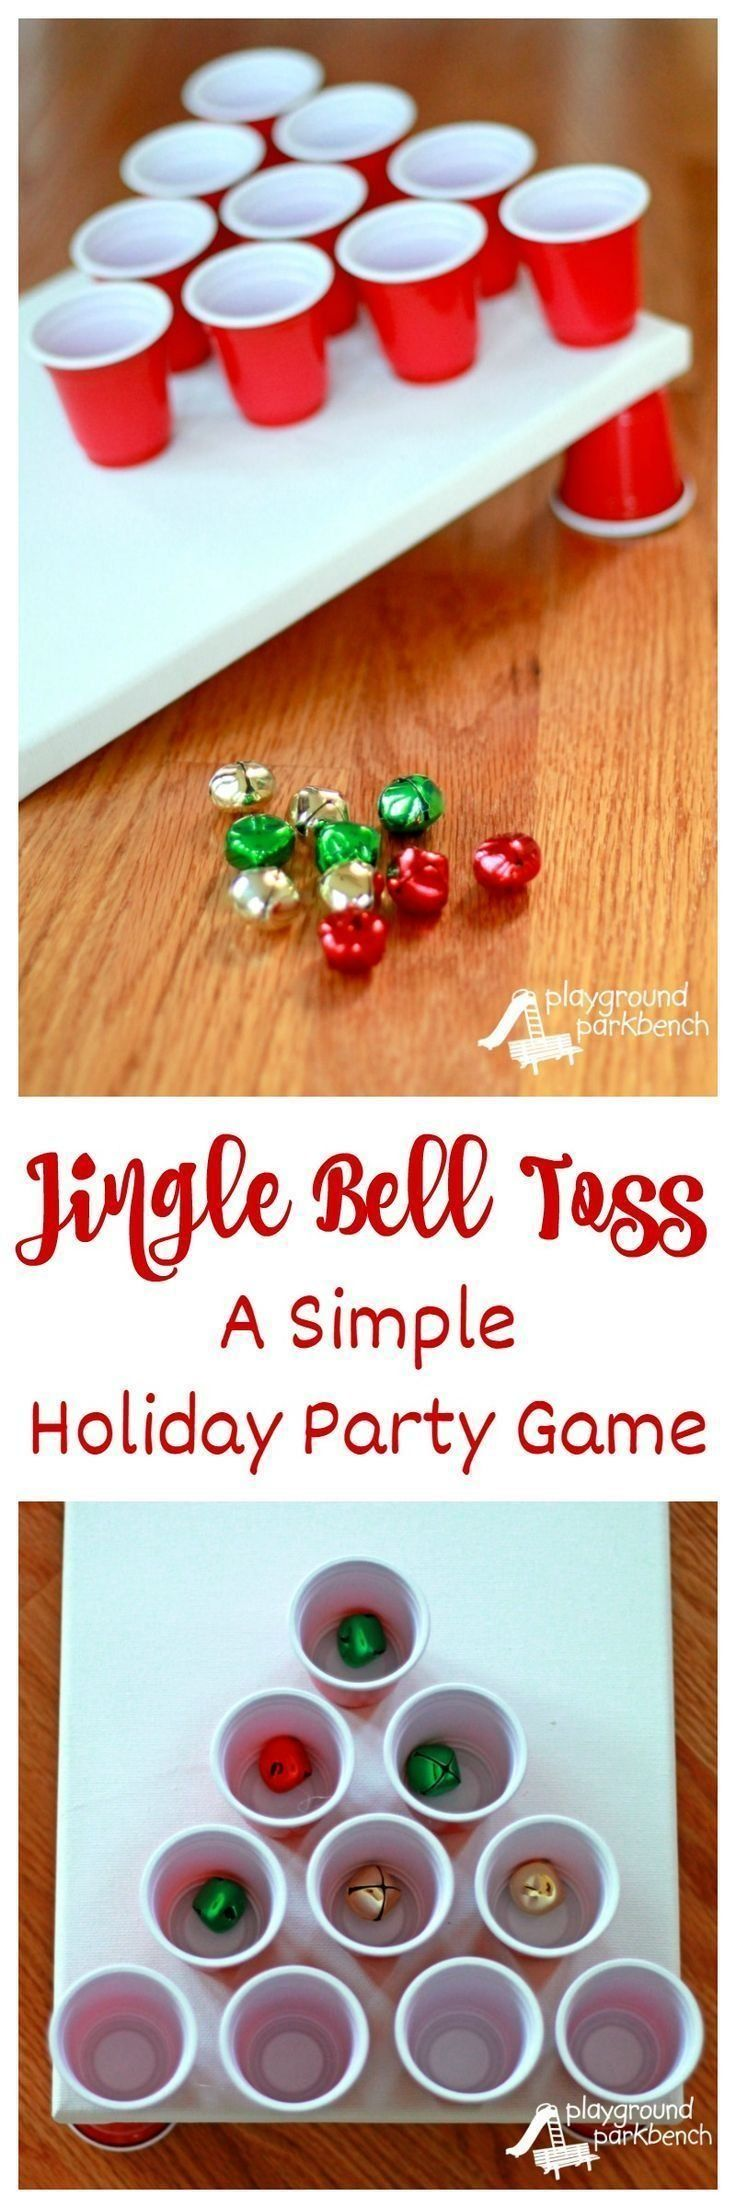 Looking for a family Christmas party game? Set up Jingle Bell Toss! You can make this game in less than 5 minutes for less than $5 in materials!